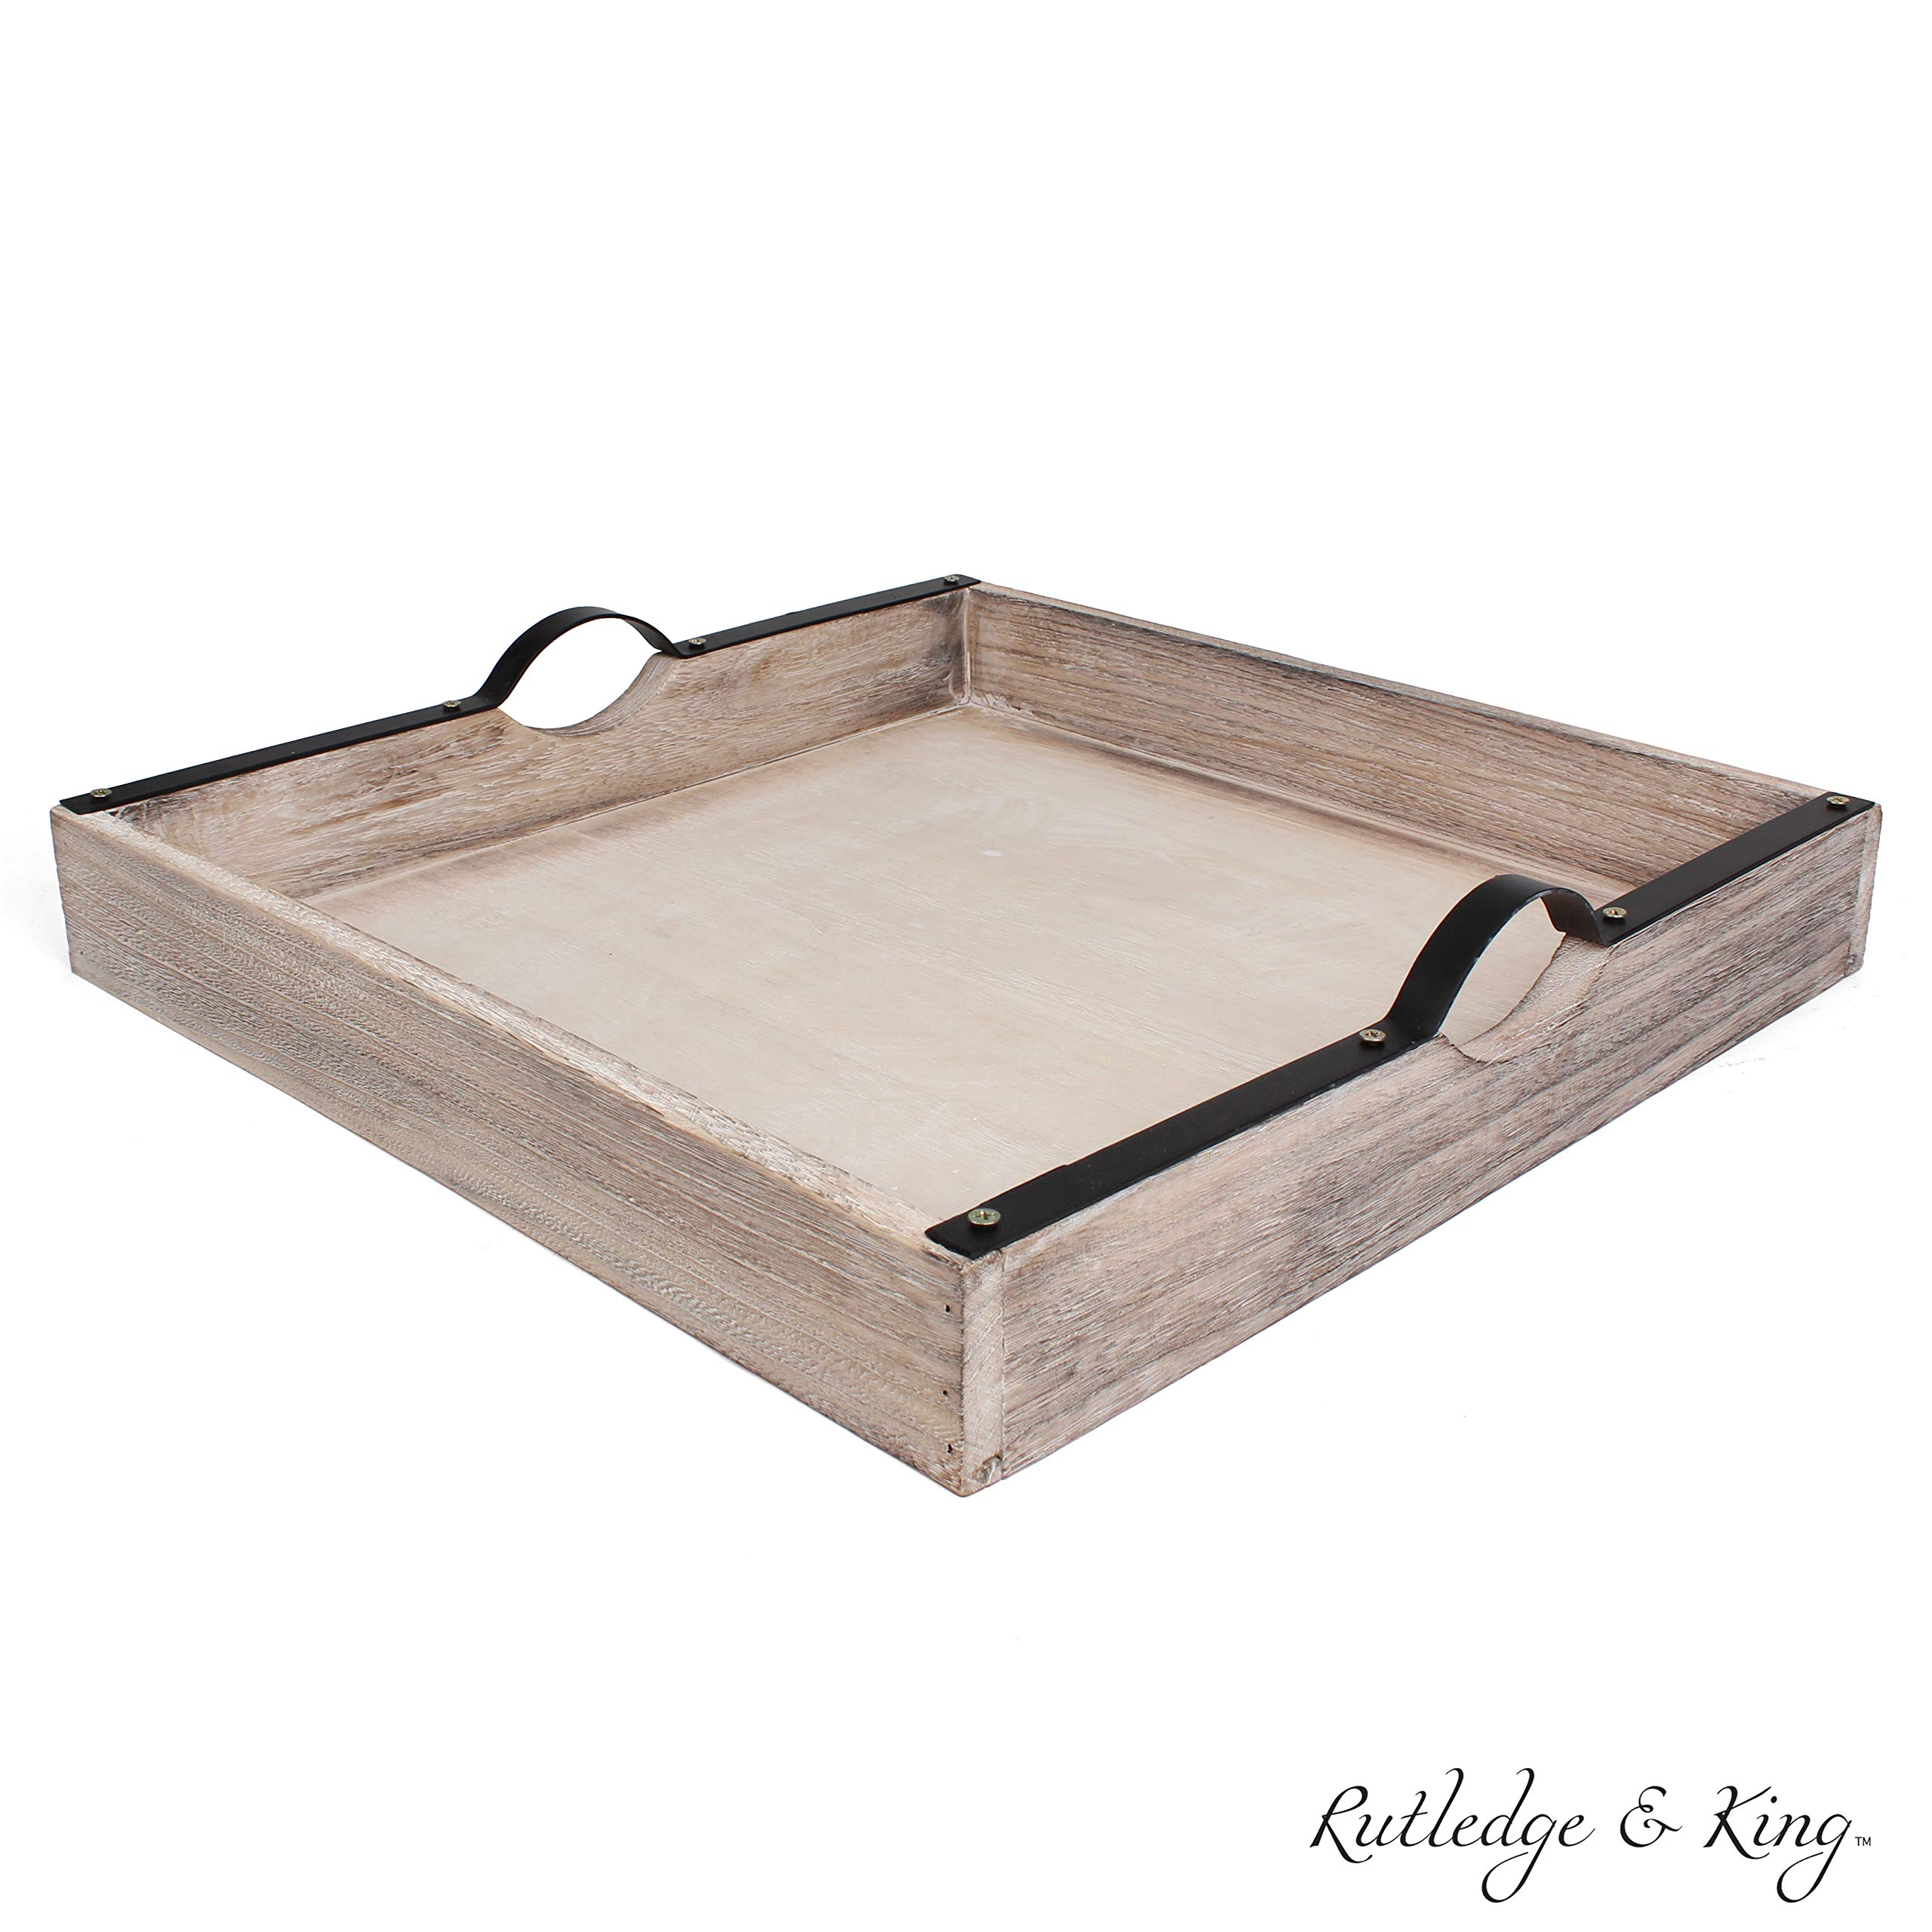 Rutledge & King Beaufort Serving Tray - Ottoman Tray/Decorative Tray - Coffee Table Tray/Square Wooden Tray - Breakfast in Bed Tray with Handles - Rustic Wood Tray by Rutledge & King